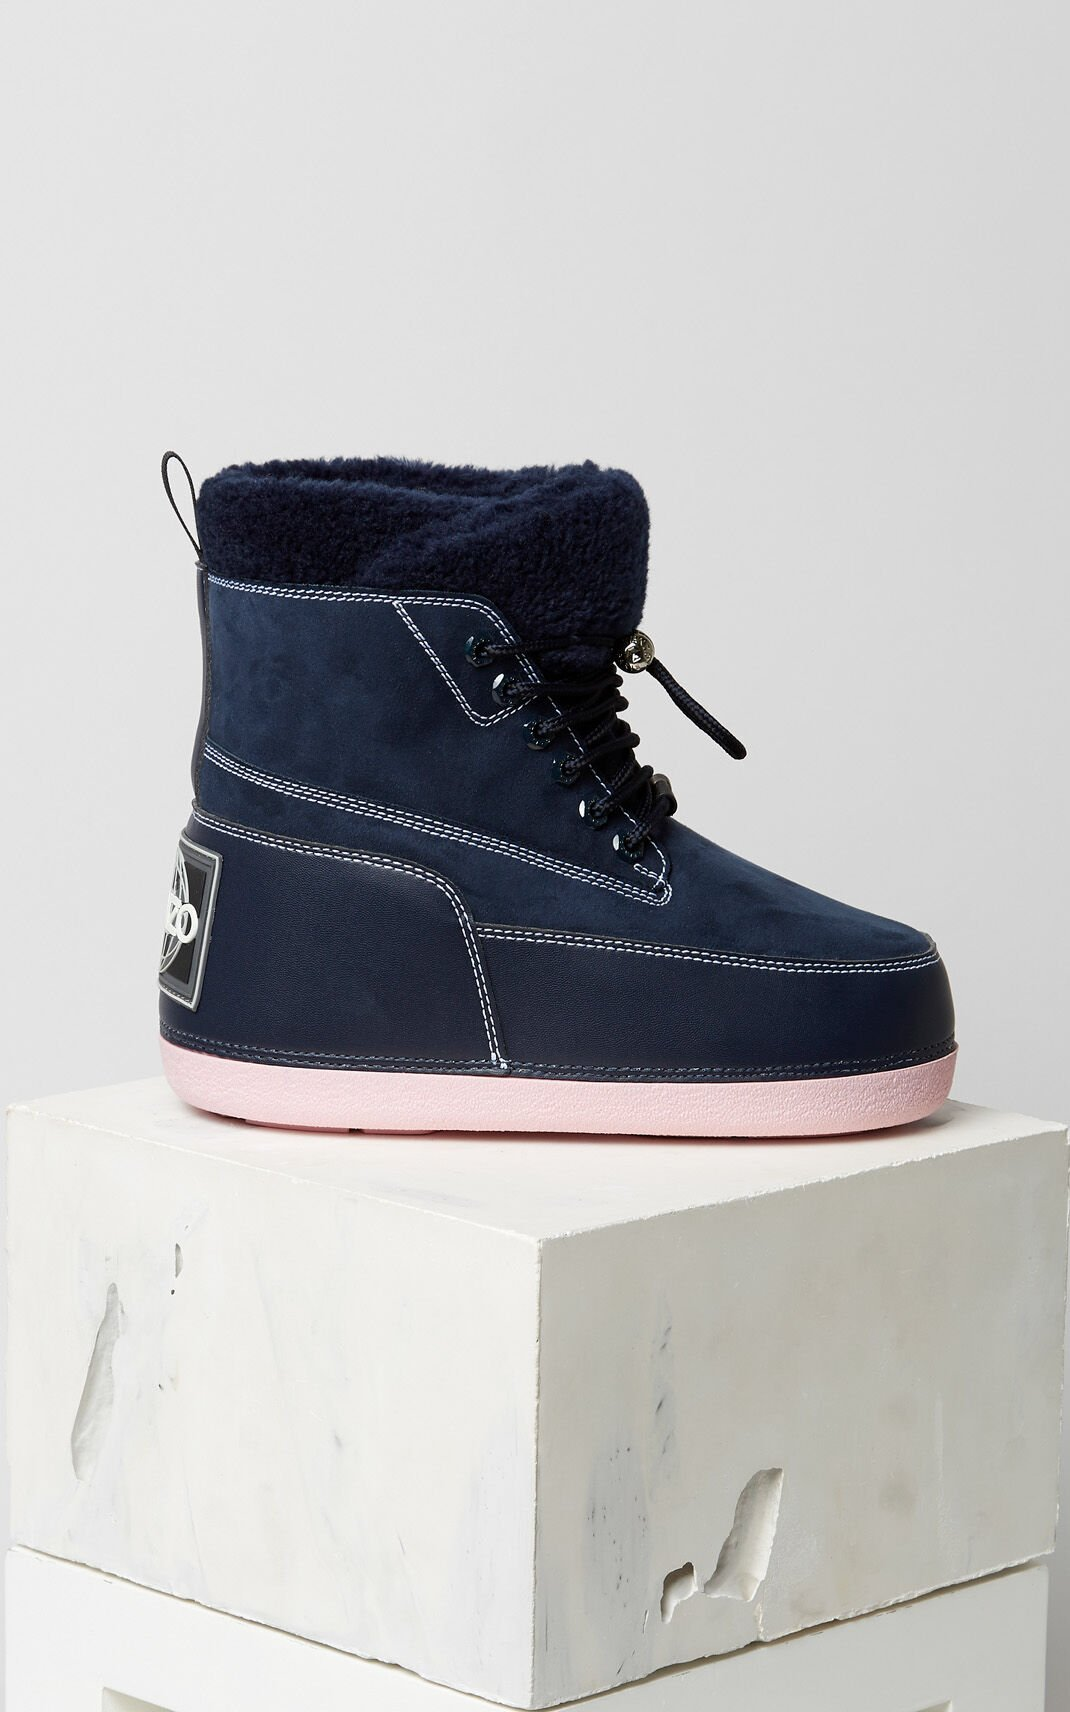 NAVY BLUE Nebraska Boots for women KENZO